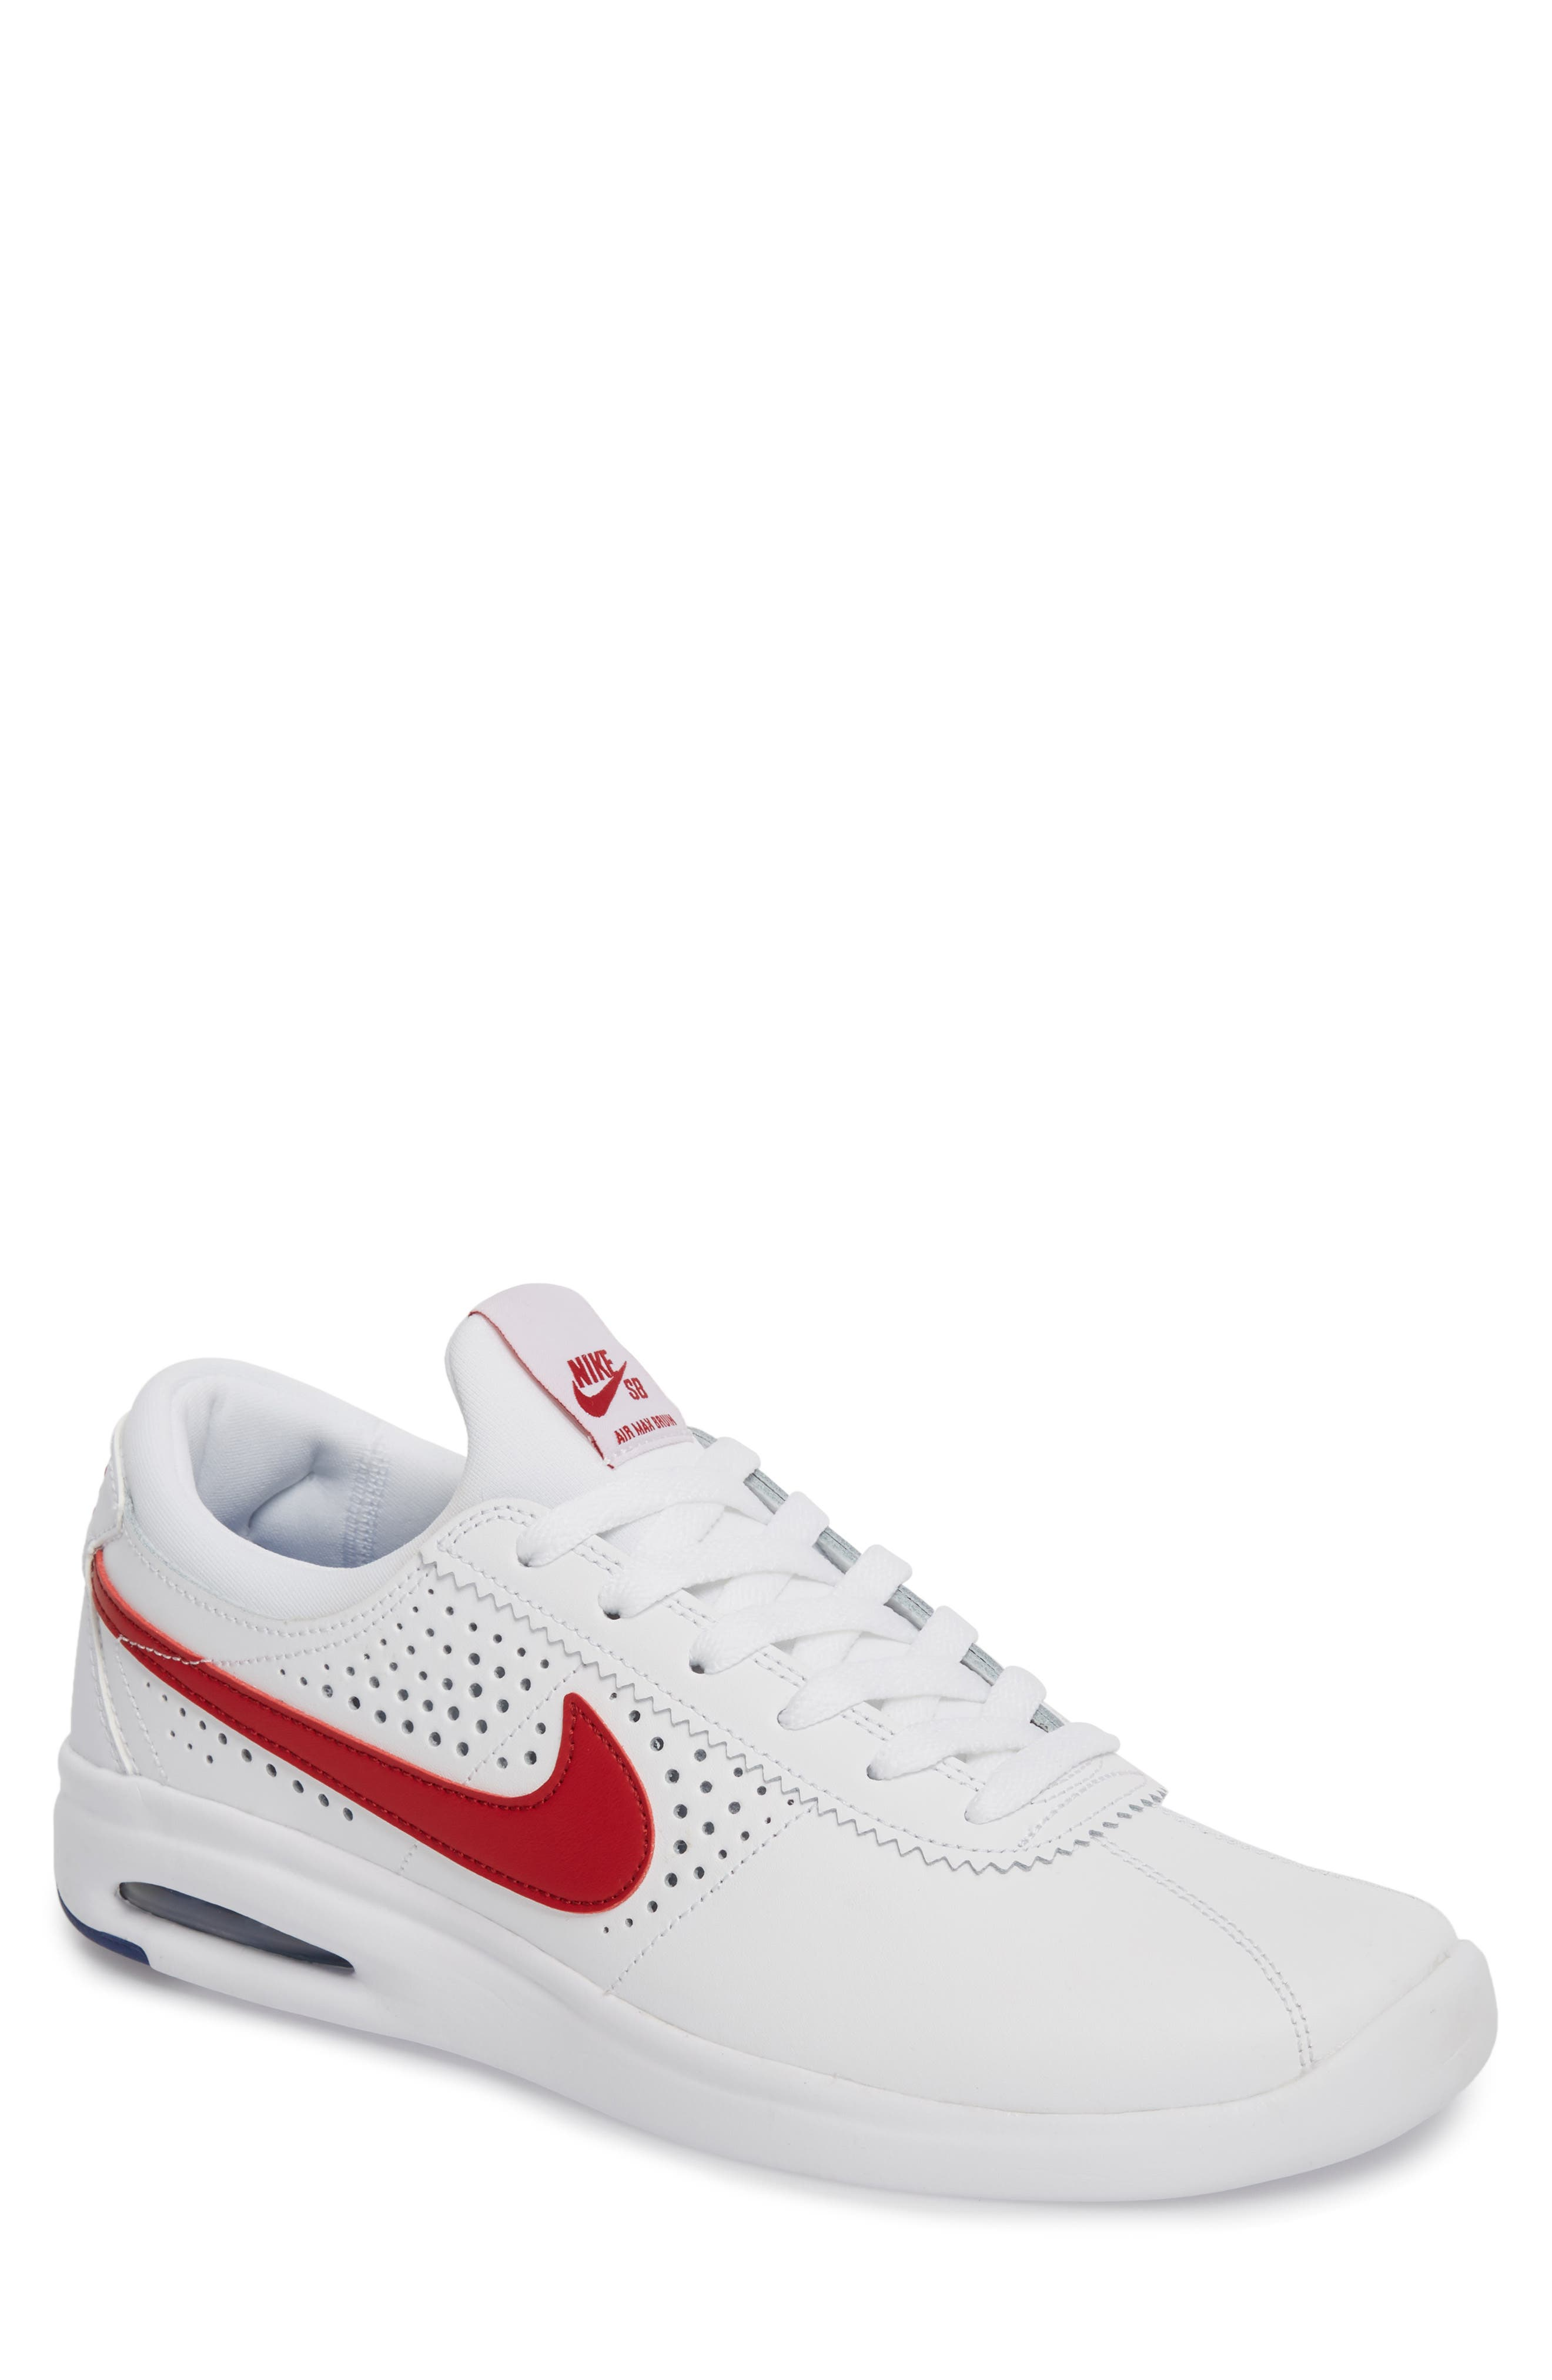 SB Air Max Bruin Vapor Skateboarding Sneaker,                             Main thumbnail 1, color,                             100